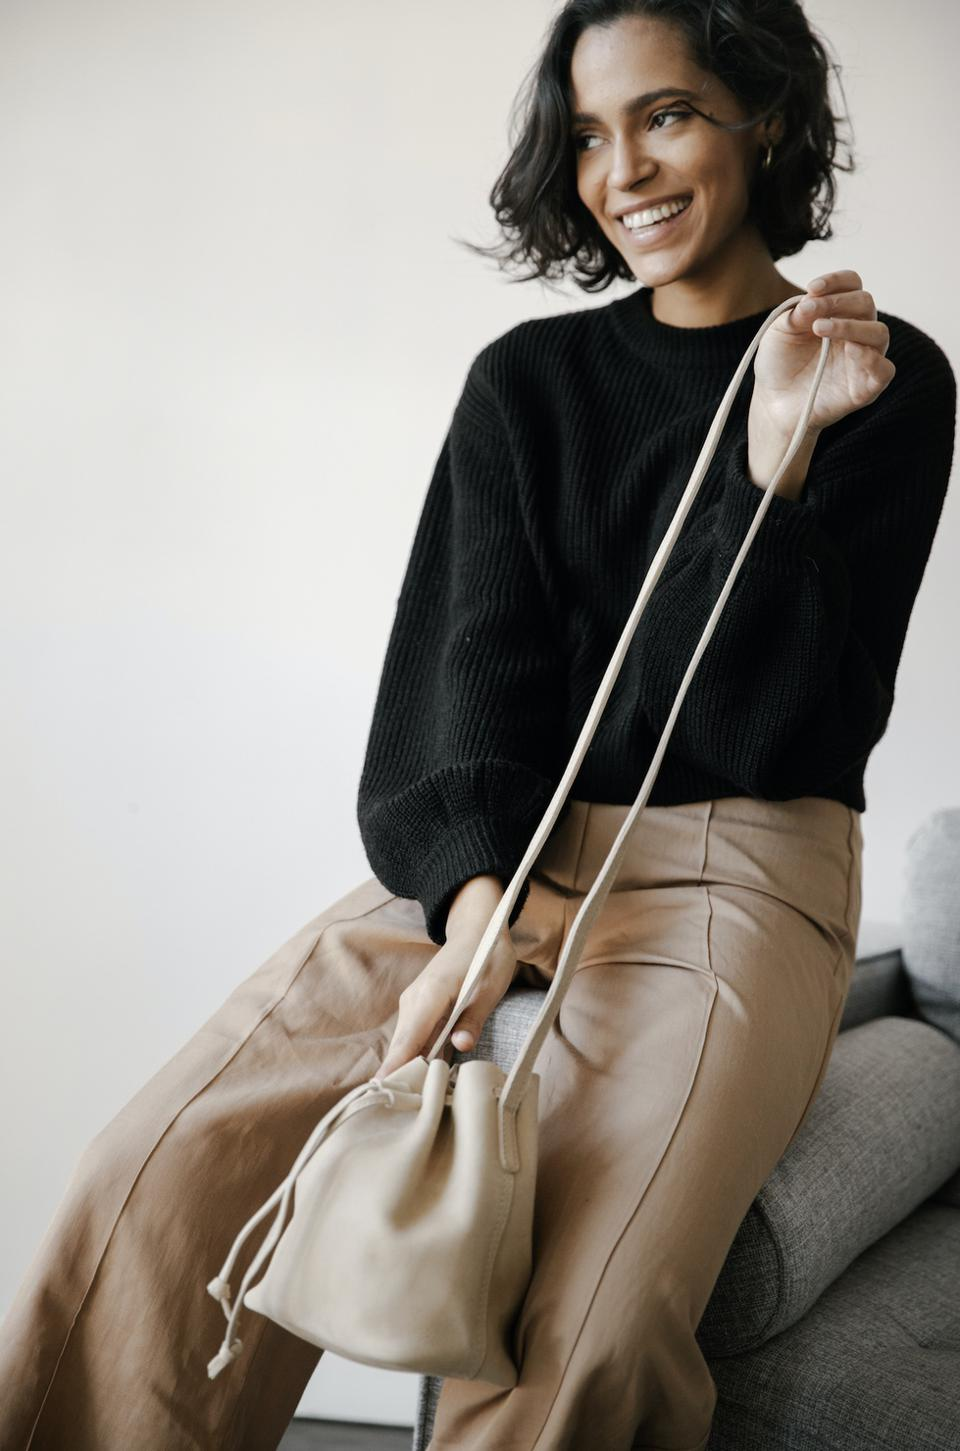 With attention to detail and minimalist design, the new Topa Mini bucket is the perfect statement leather bag inspired by the best of East African style and California confidence.